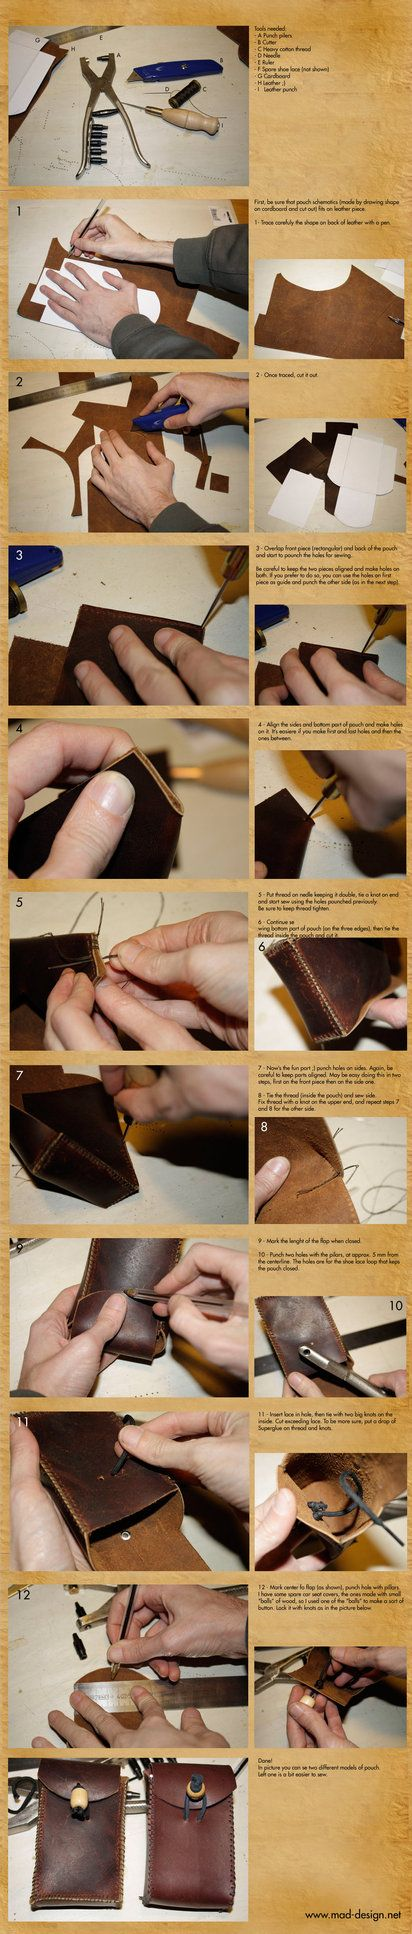 How to make a pouch